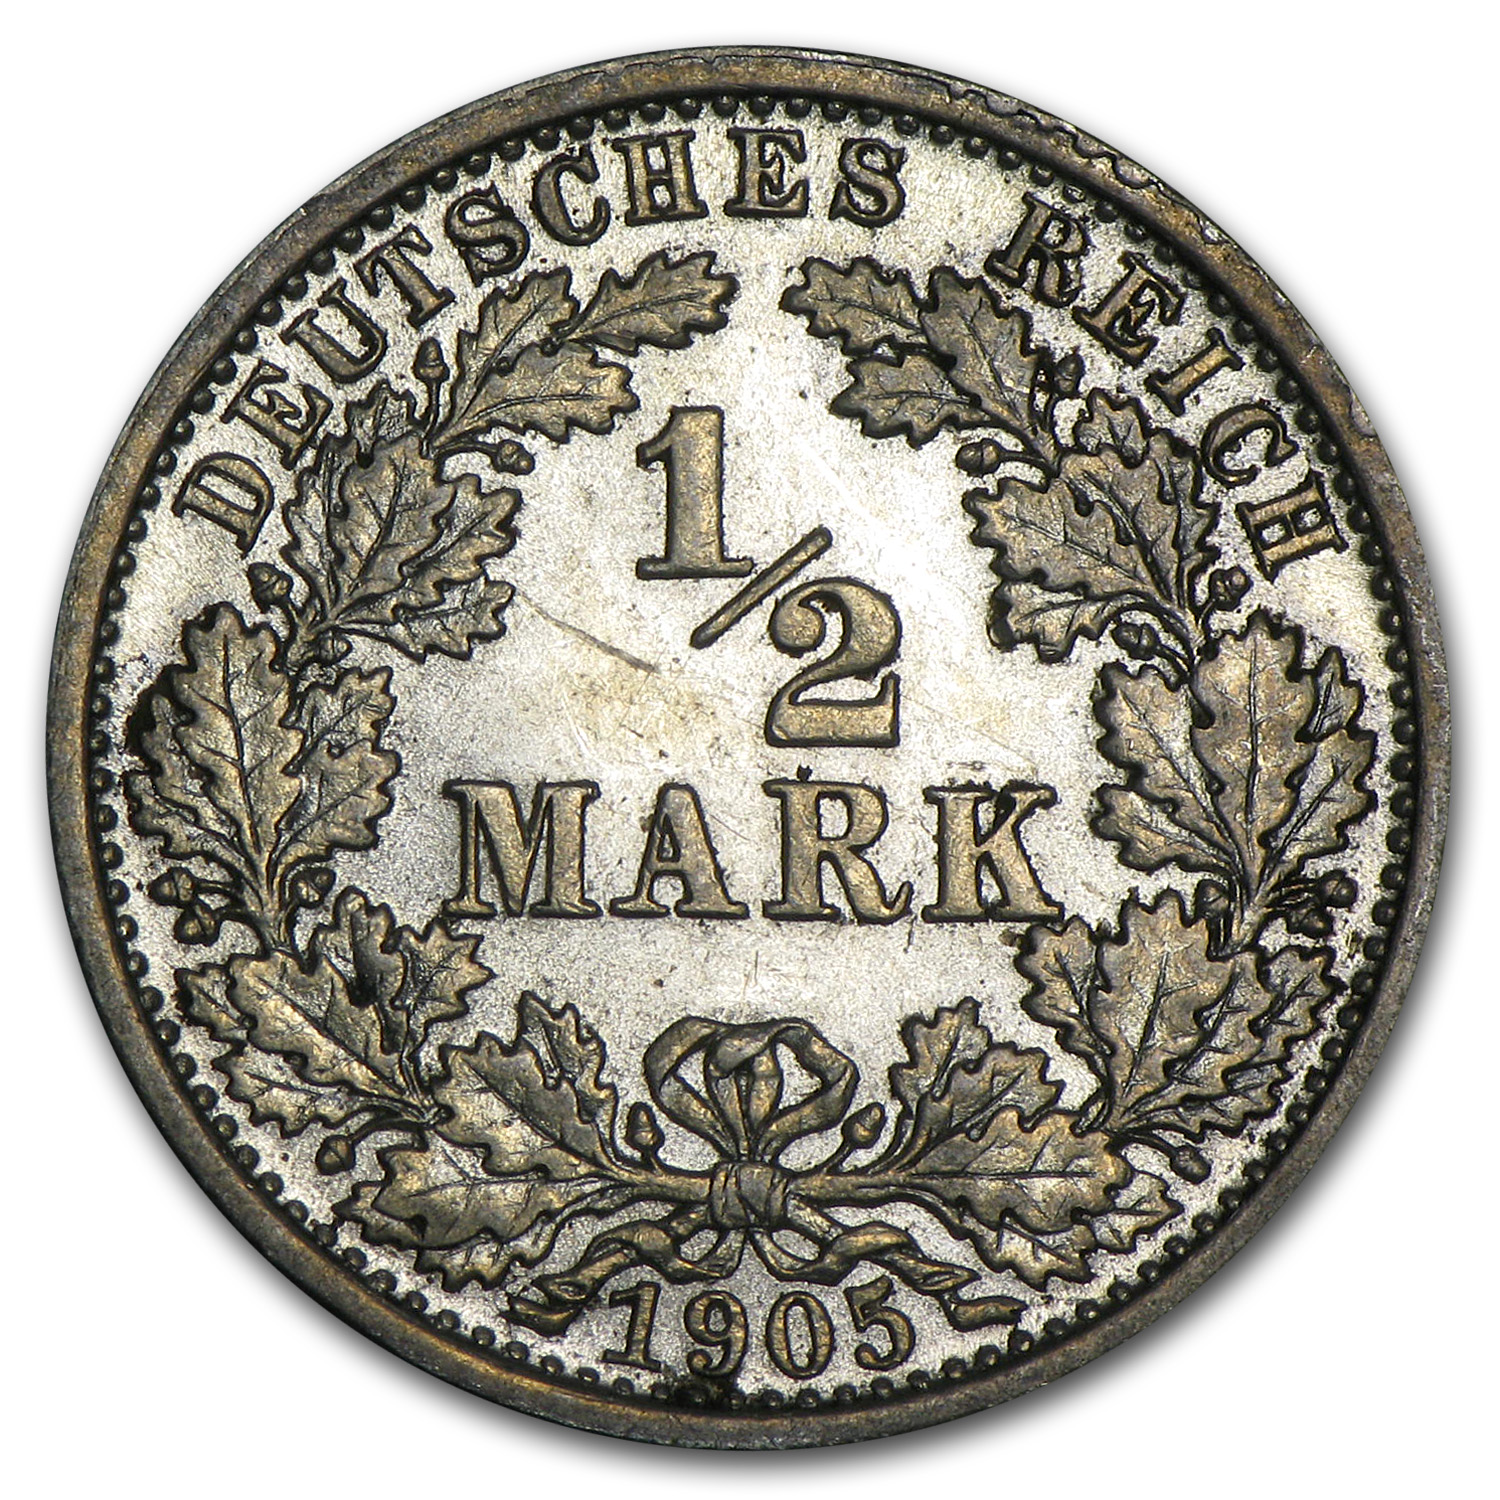 Germany 1905 Silver 1/2 Mark Uncirculated